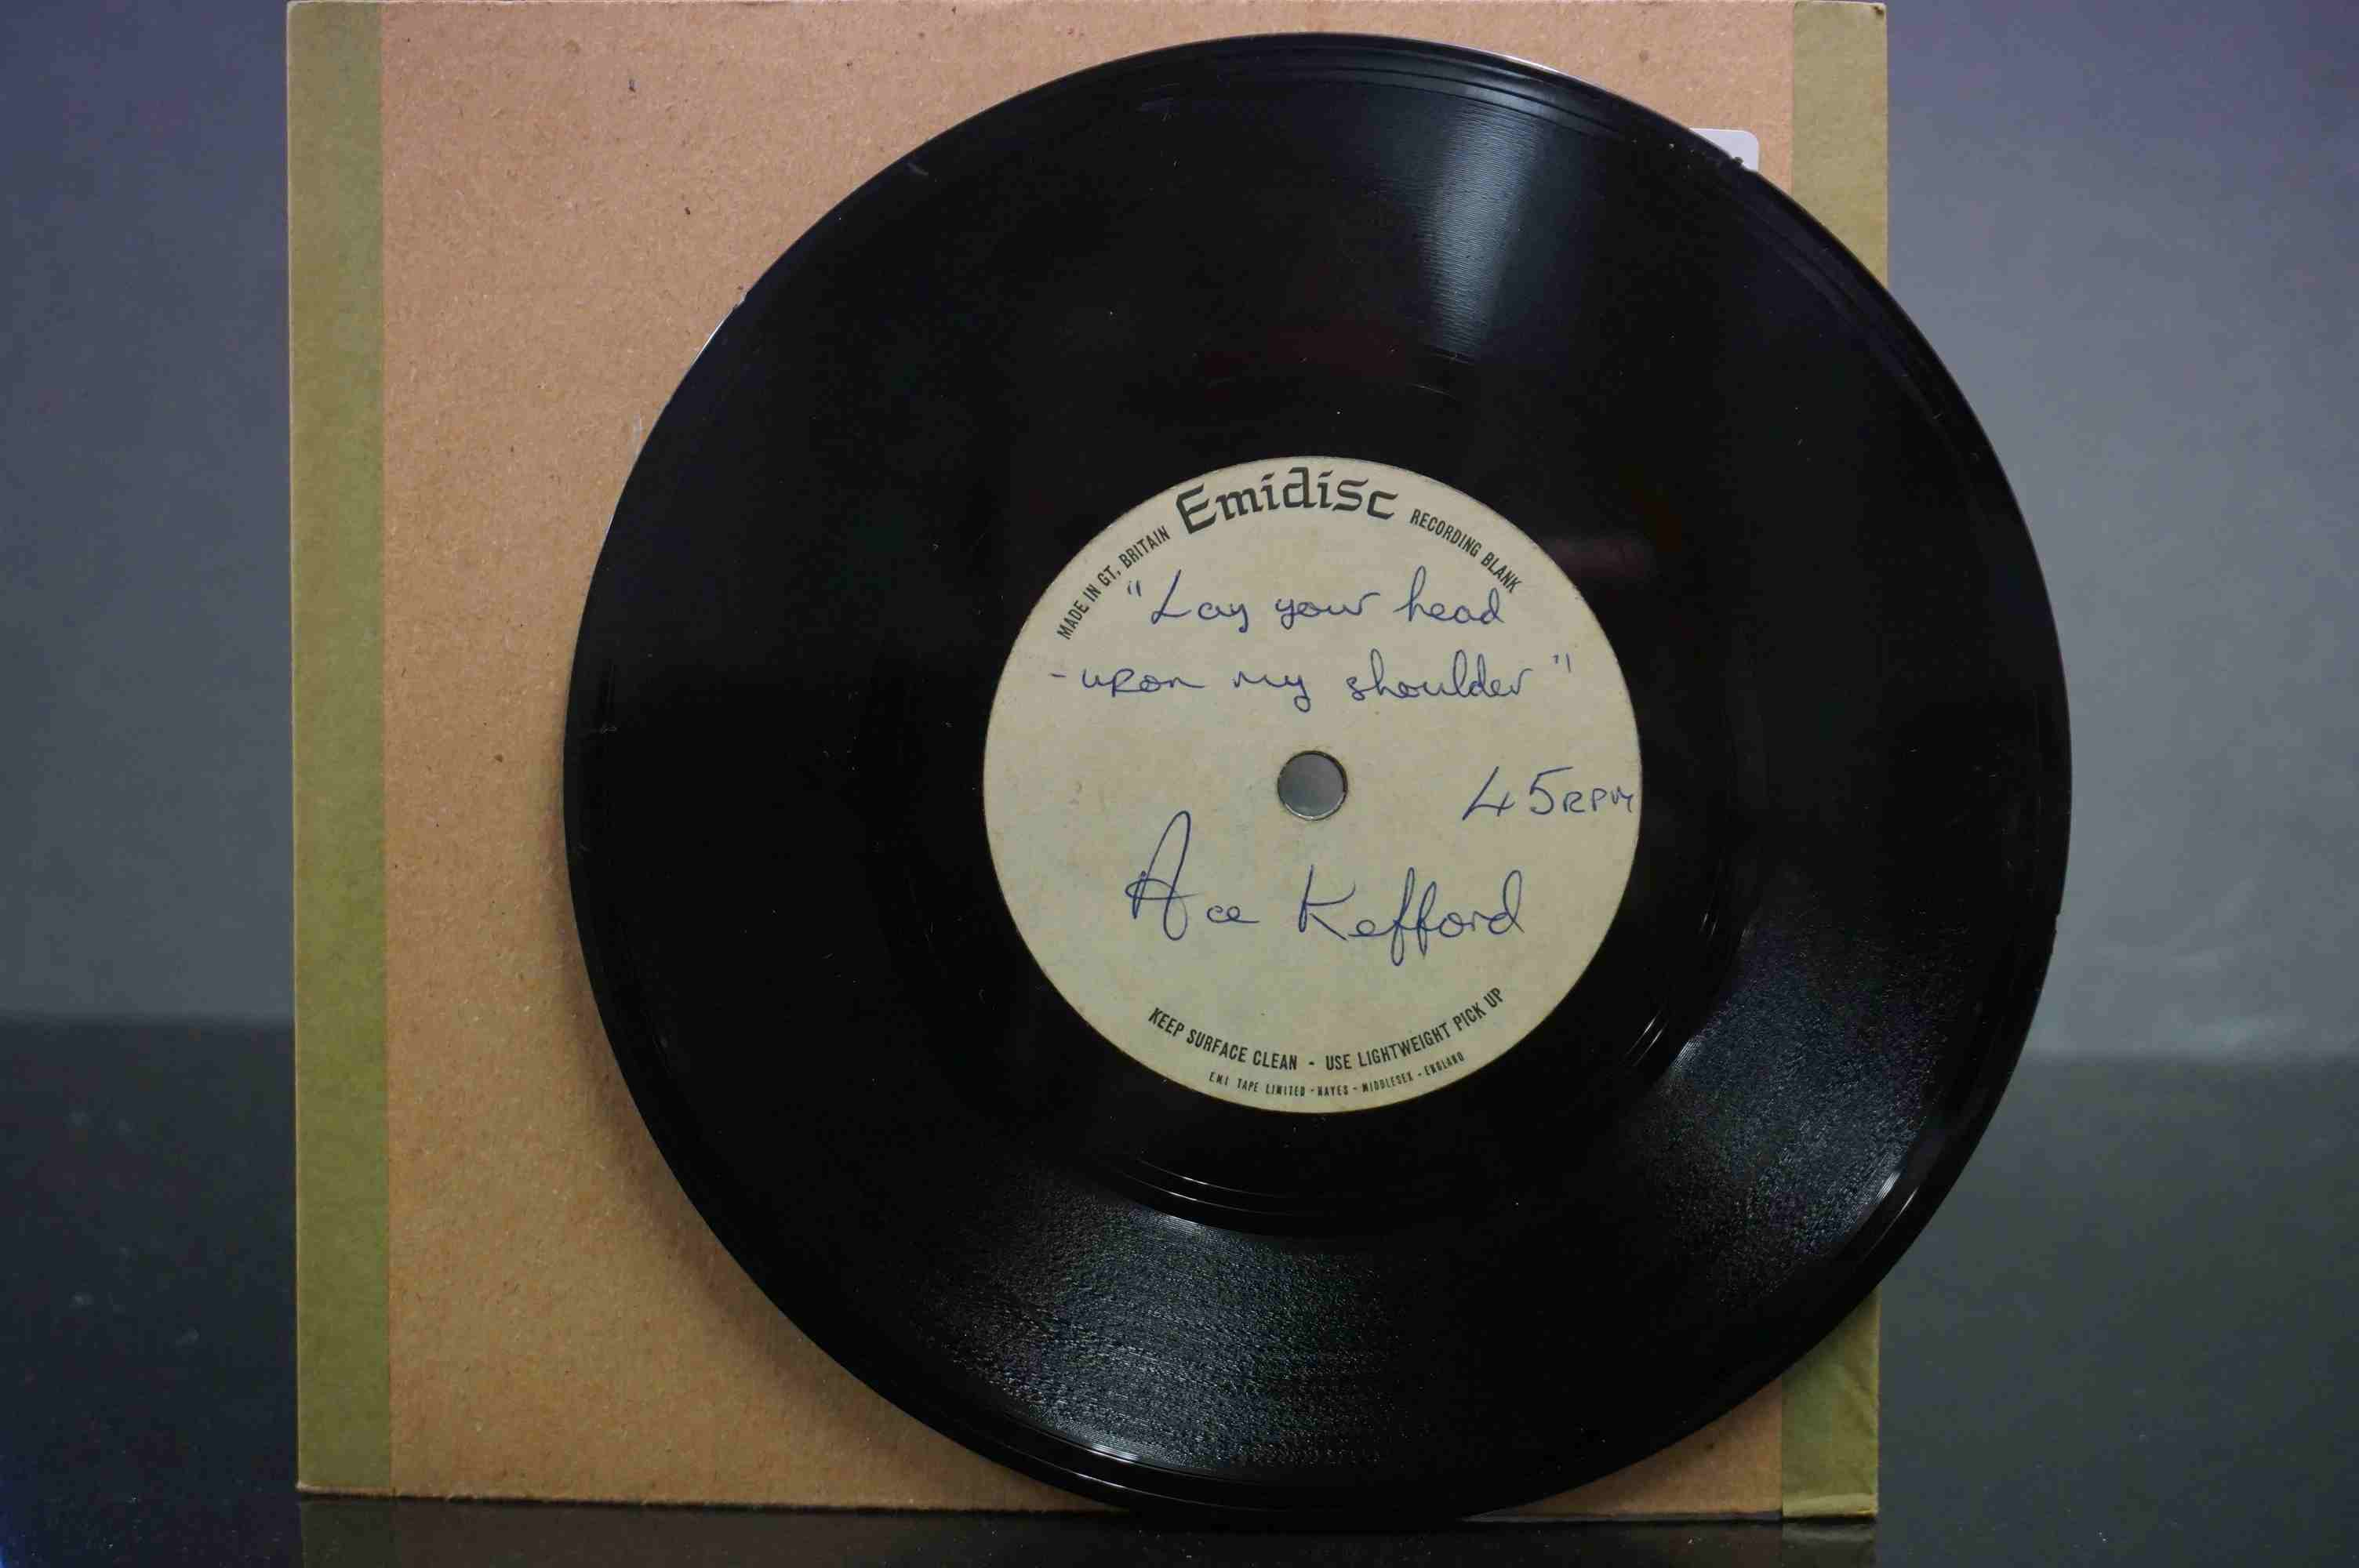 Vinyl - David Bowie / Ace Kefford - A two sided acetate featuring a previously unknown & unheard - Image 6 of 9